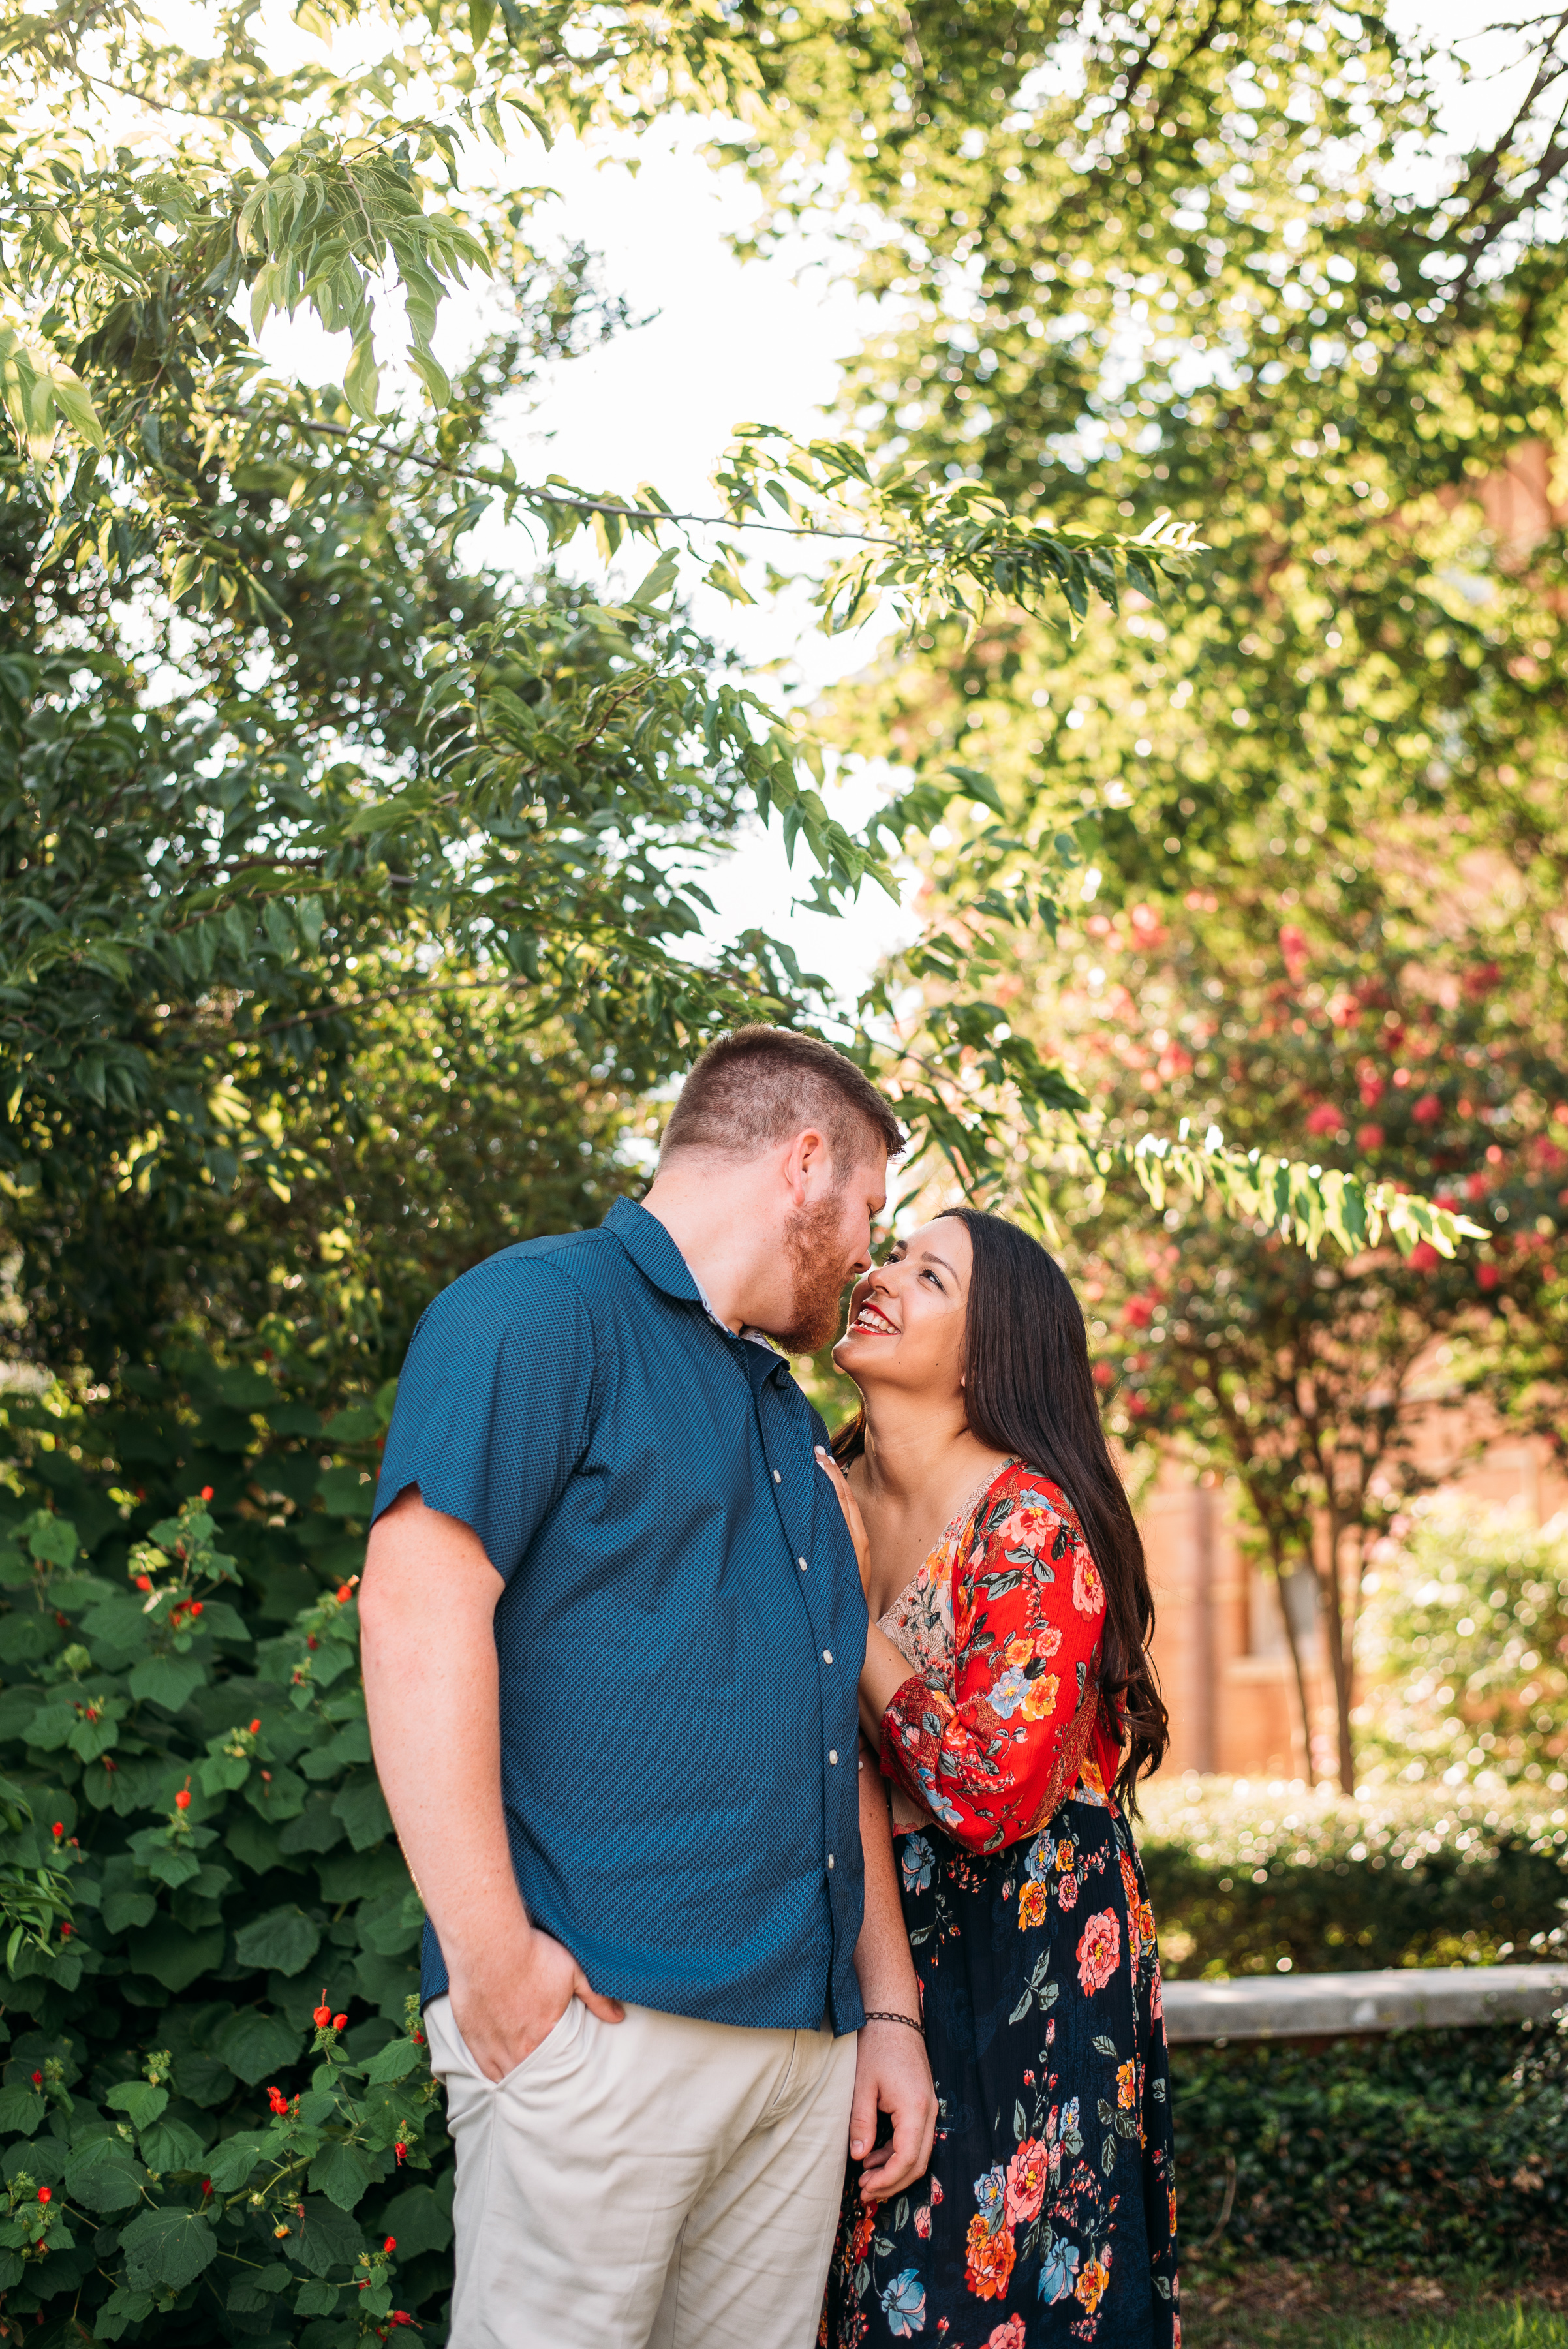 Downtown-Bryan-Engagement-George-Bush-Library-Texas-A&M-University-College-Station-Wedding-Photographer-San-Angel-Photo-Mark-Abigail-Jake-19.jpg